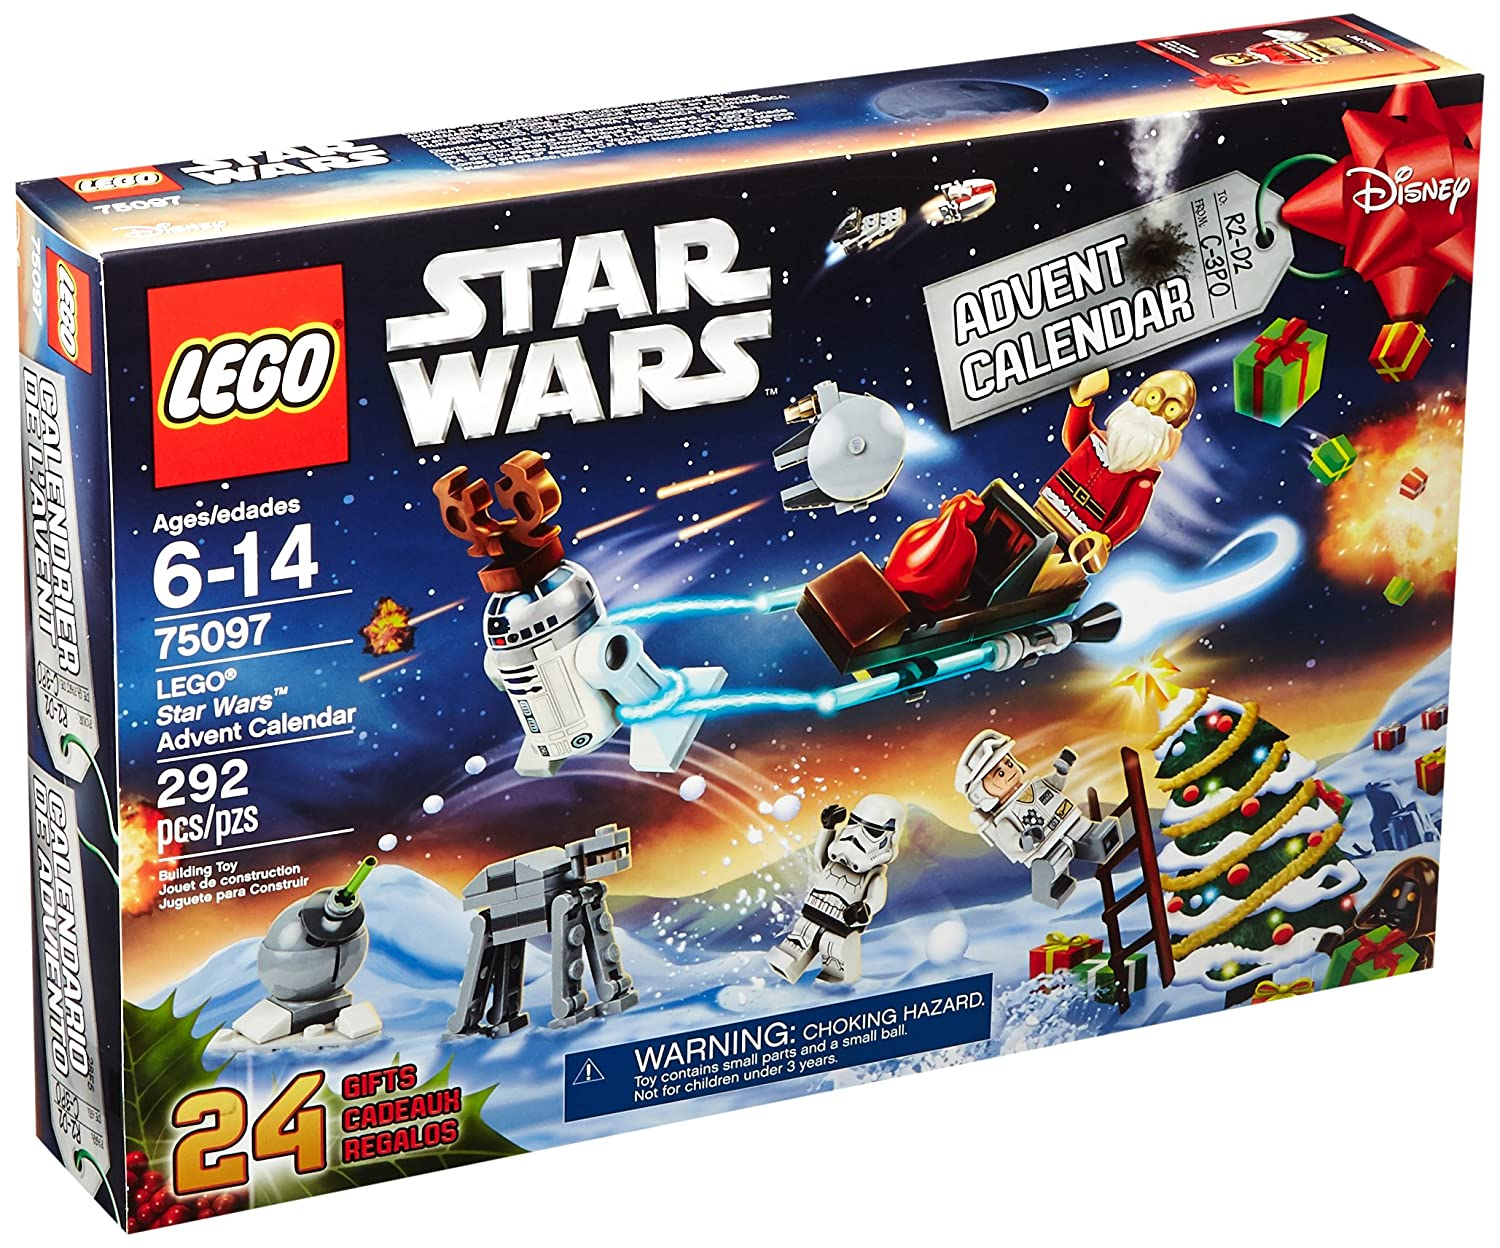 Calendrier Avent Lego Star Wars 2019.Lego Star Wars 75097 Advent Calendar Building Kit Discontinued By Manufacturer